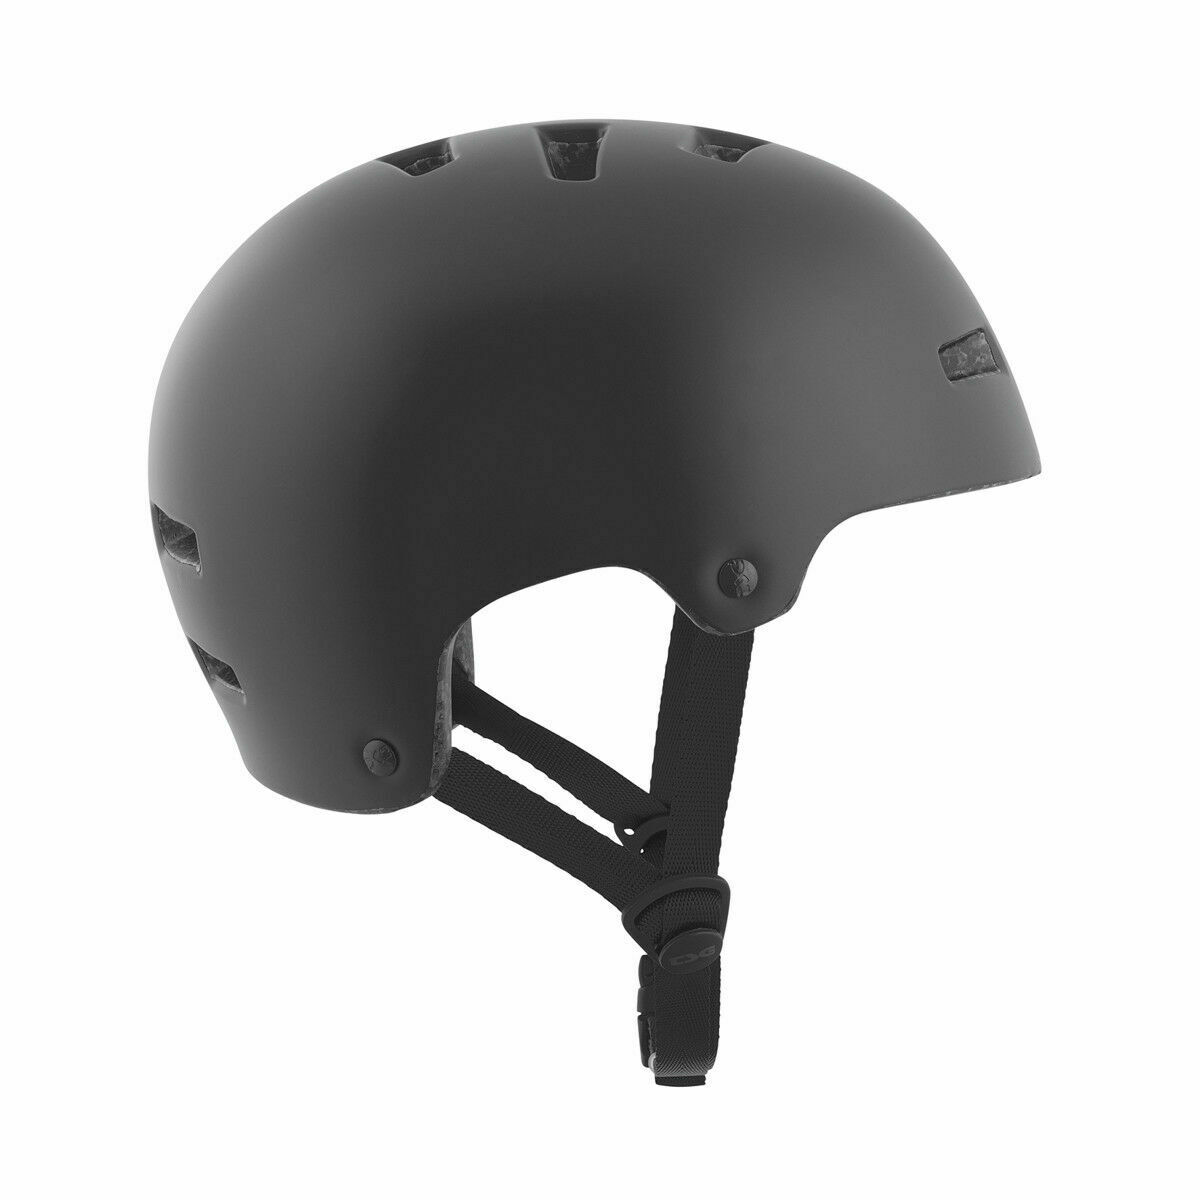 TSG Nipper Maxi  Solid color XXS XS Mountain Bike Standard Helmet for Bicycle  simple and generous design